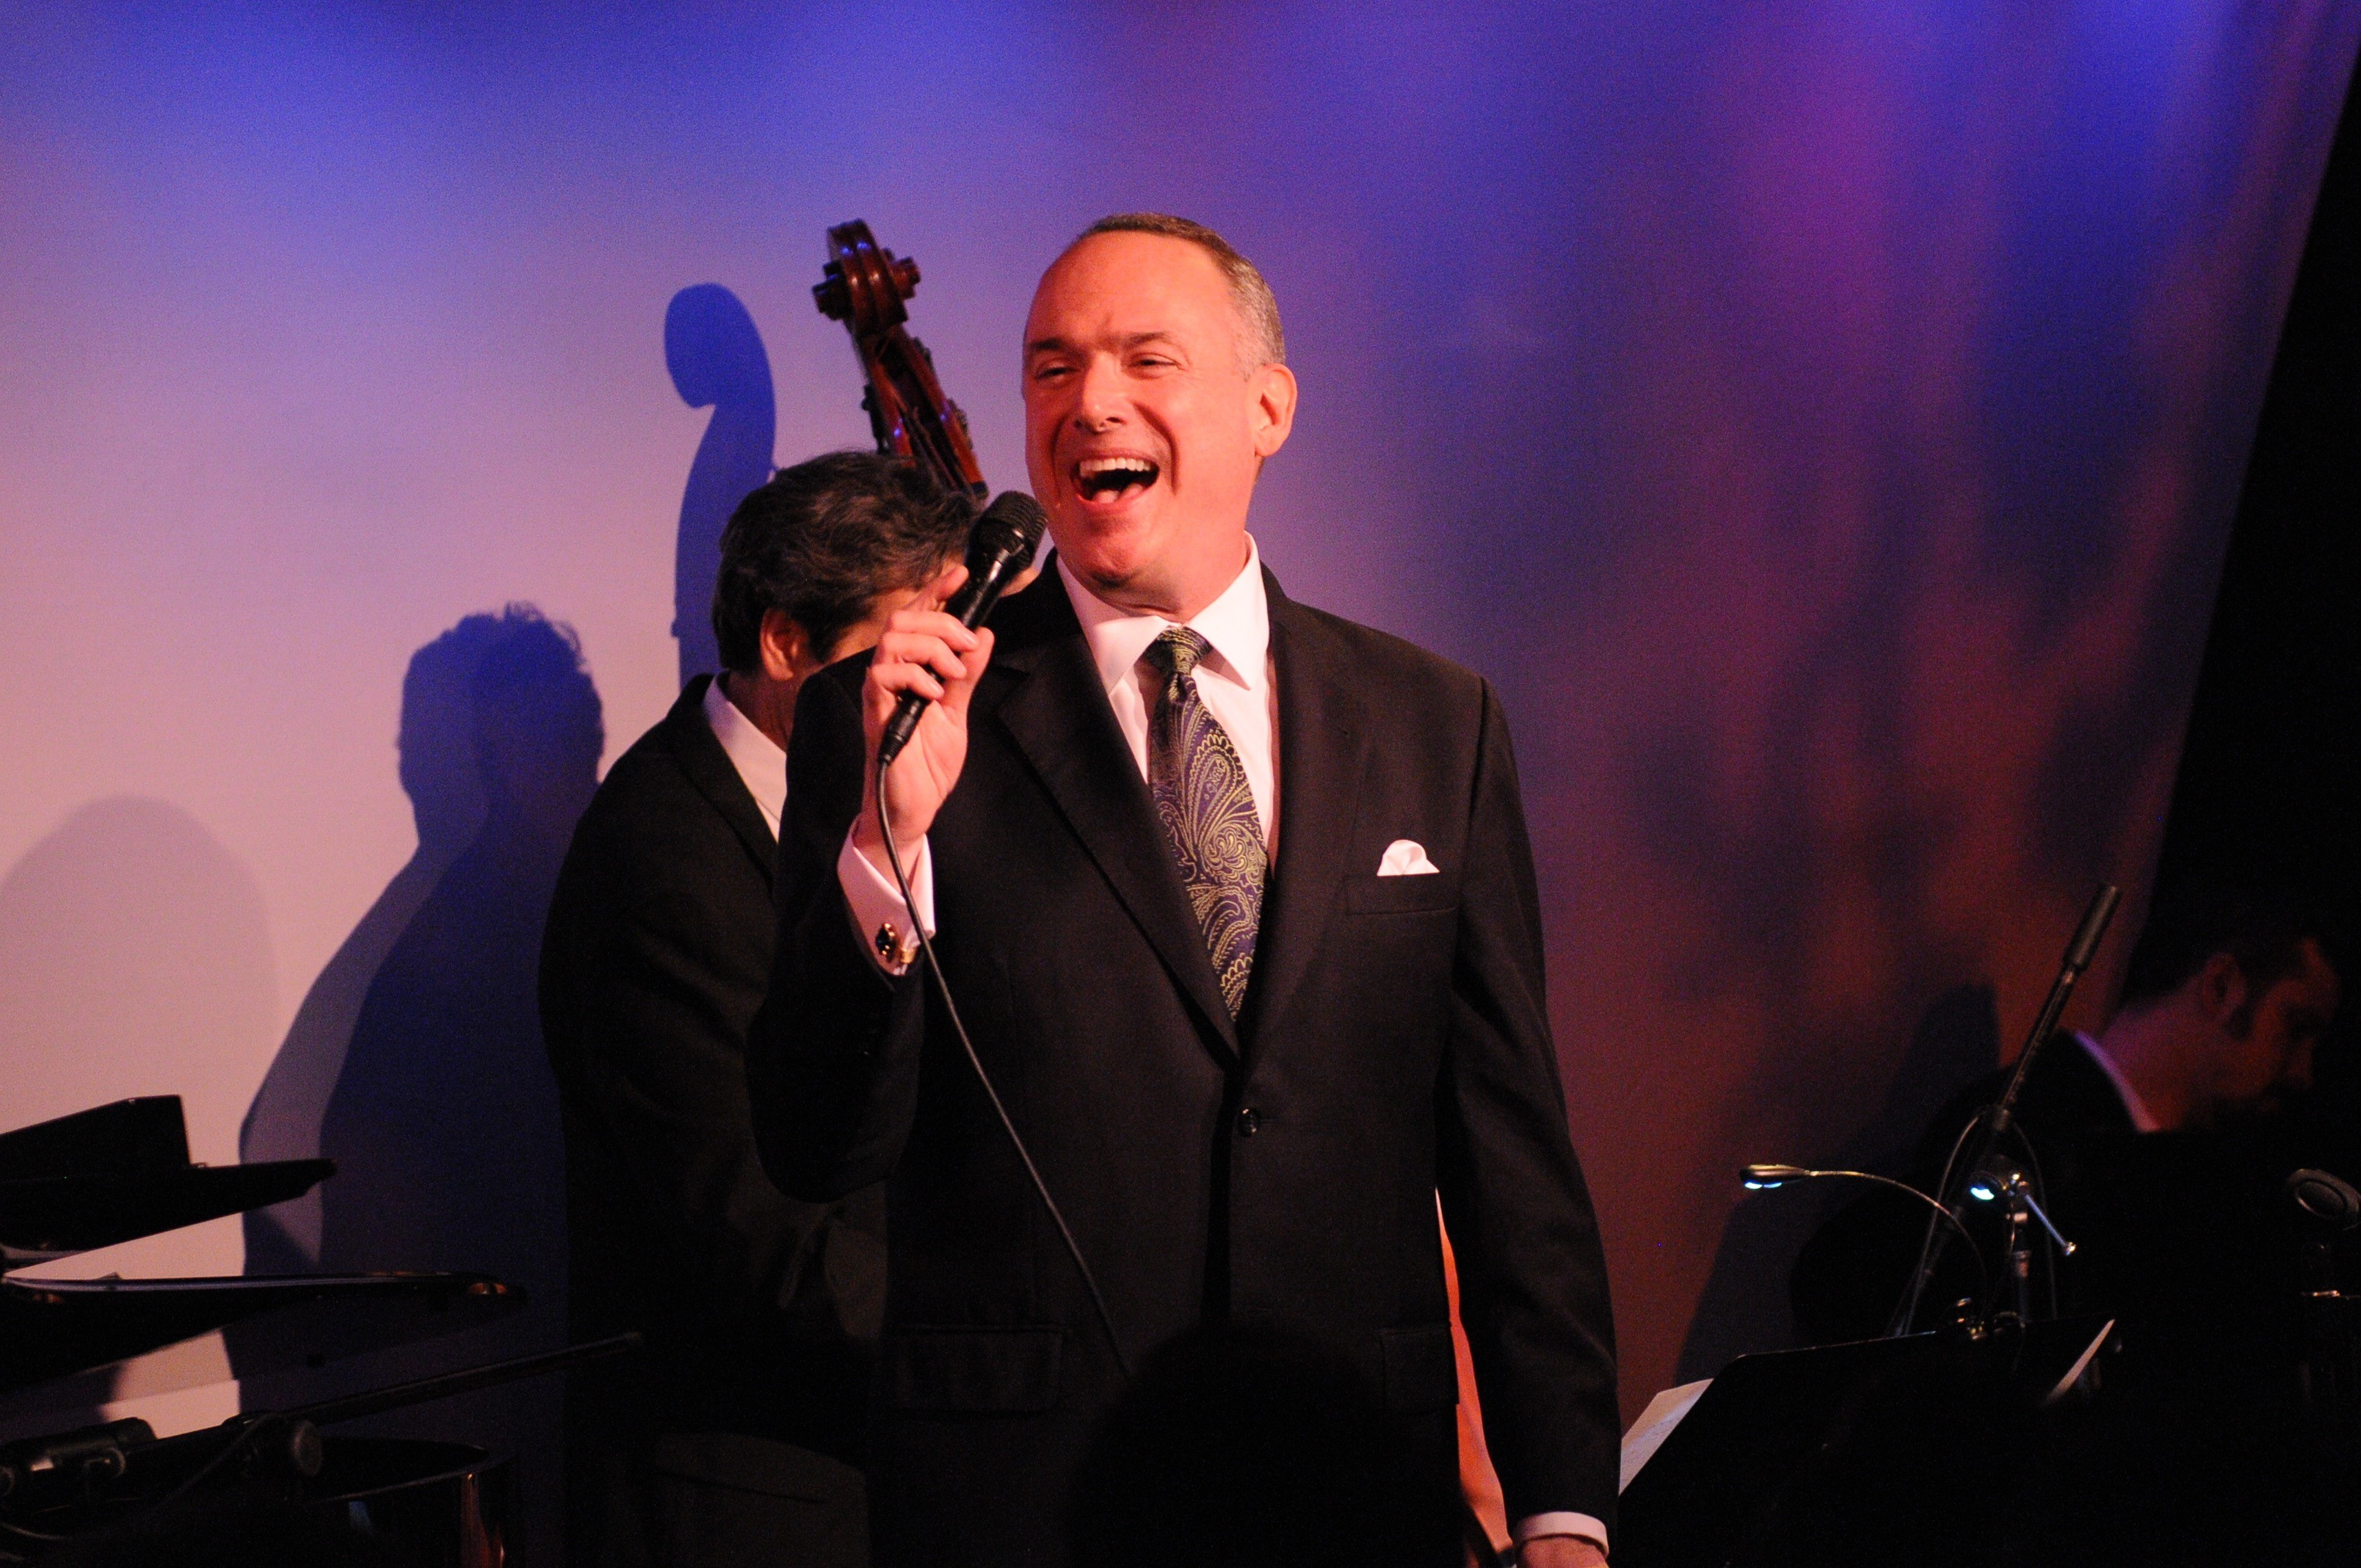 """Texas jazz singer Ken Slavin on stage recently at New York City's famous Metropolitan Room. He will bring his """"turbo-charged"""" show to the Tobin Center for the Performing Arts on Thursday, November 10, 7:30 p.m. It will be a benefit for the San Antonio AIDS Foundation. (Photo: Business Wire)"""